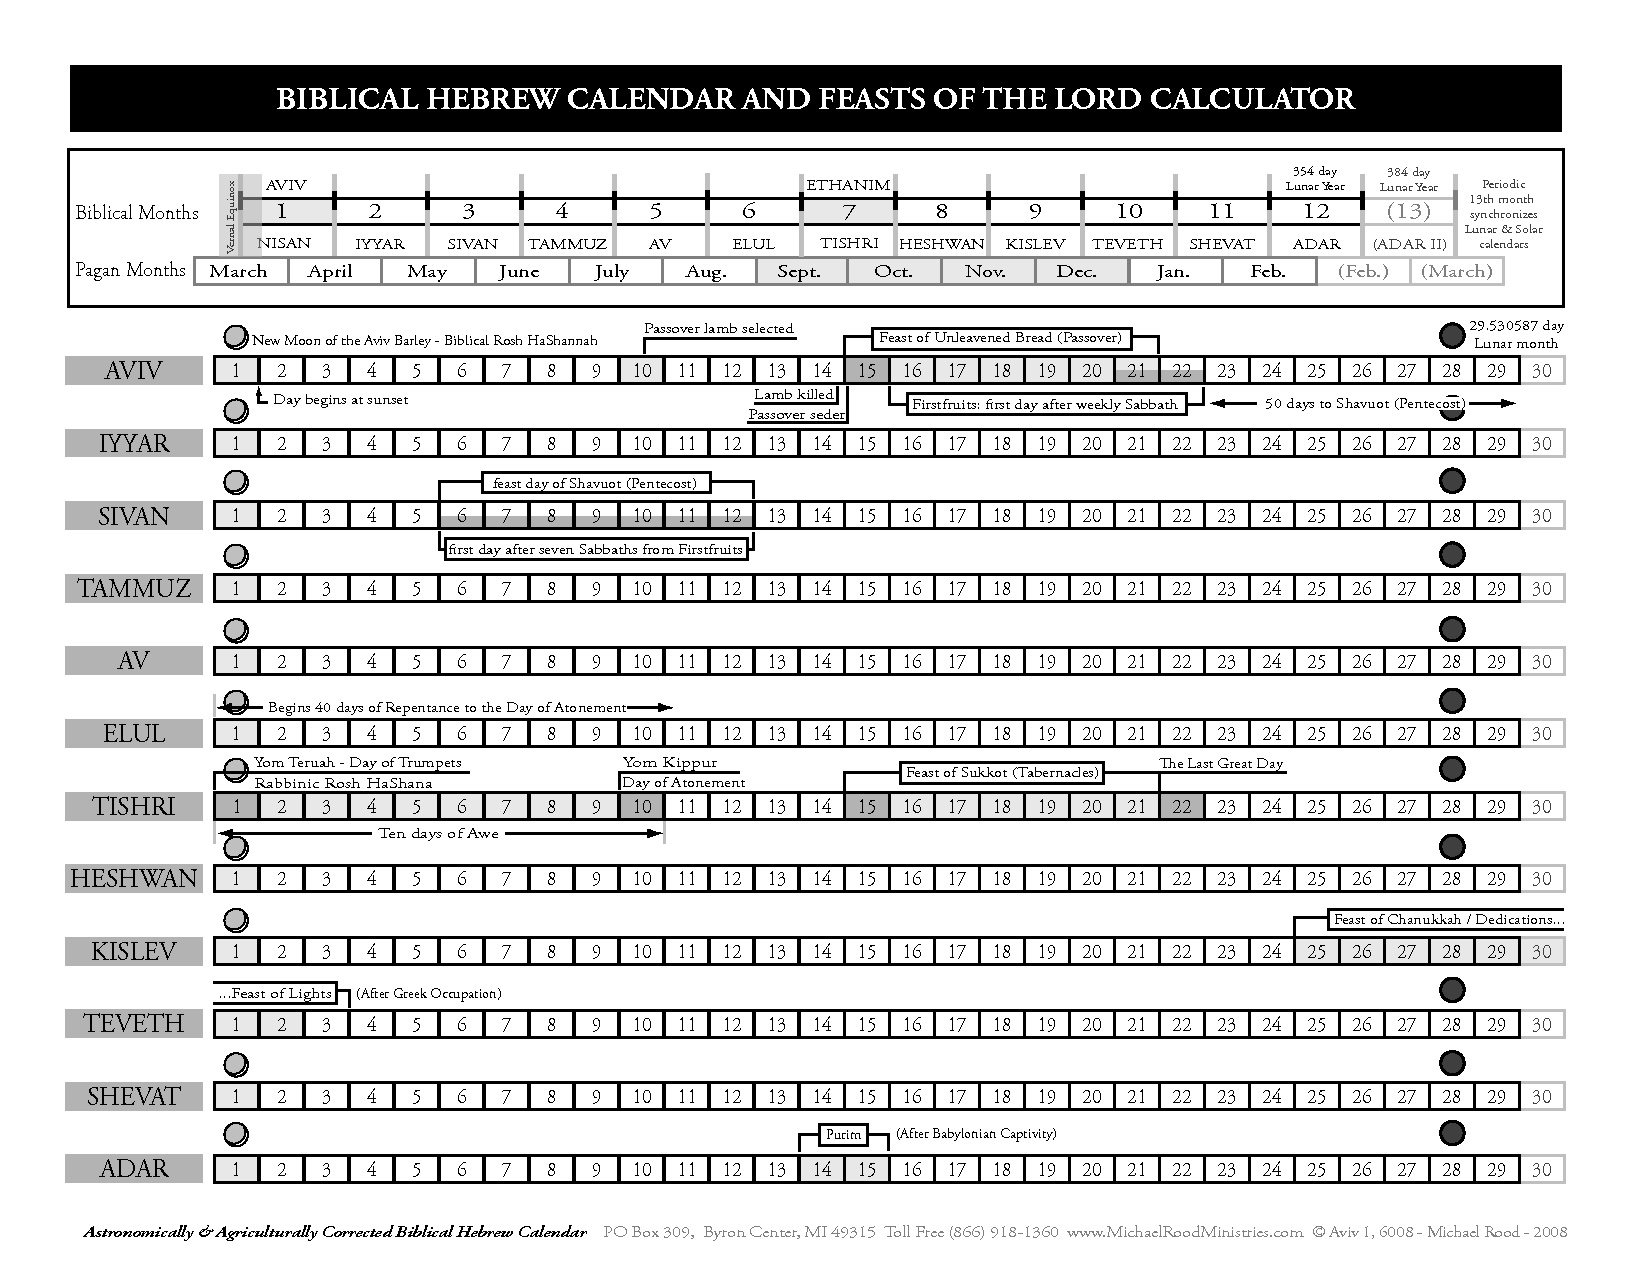 Hebrew Calendar.Michael Rood Jewish Calender Biblical Hebrew Calendar And Feasts